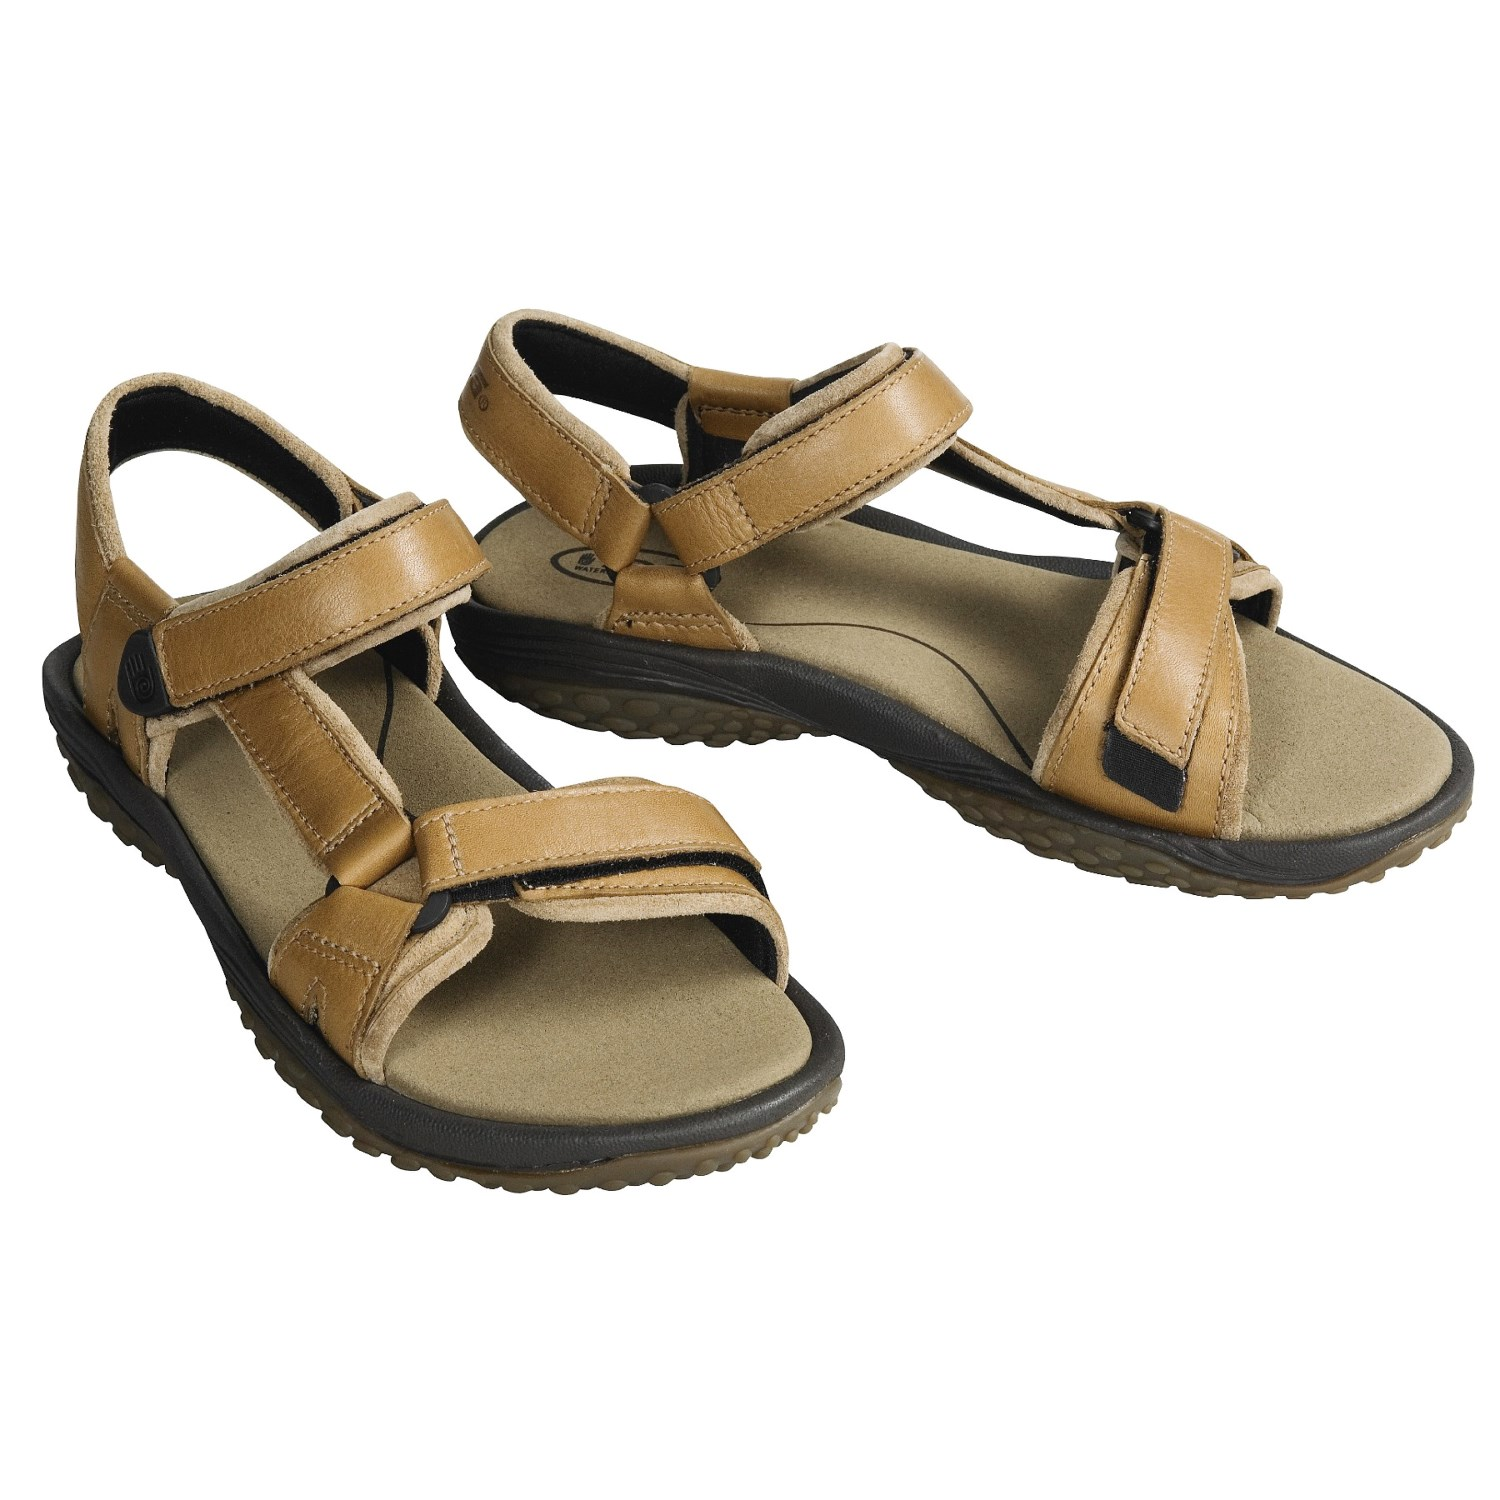 249f3b17cac6c Teva Pretty Rugged Leather 2 Sandals For Women 95370